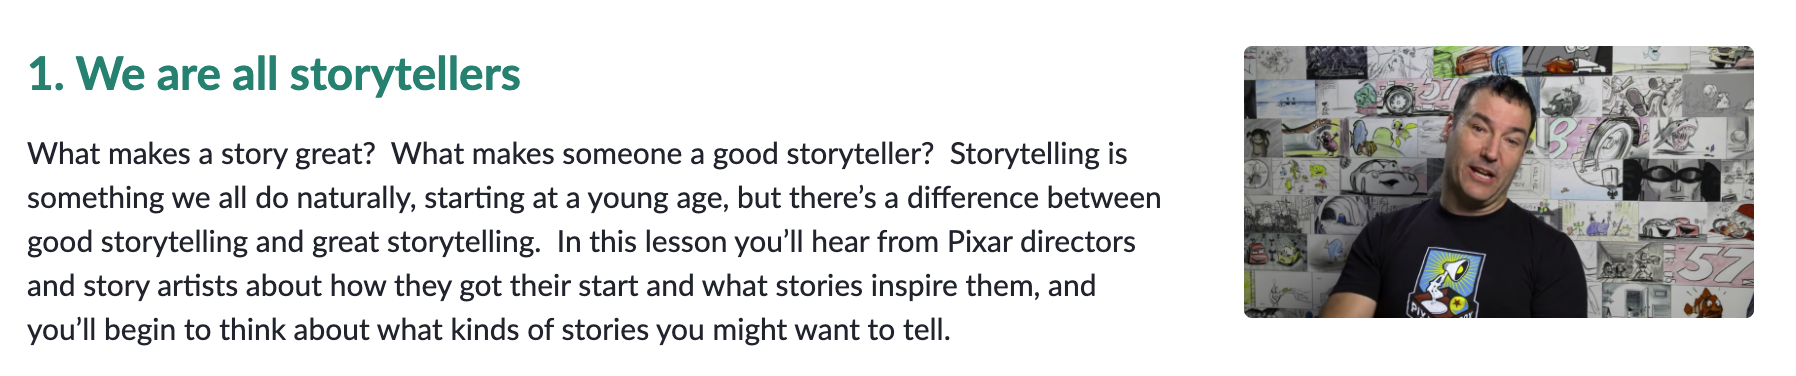 The art of storytelling with help you unpack the ideas behind good stories. Explore storytelling with your kids.